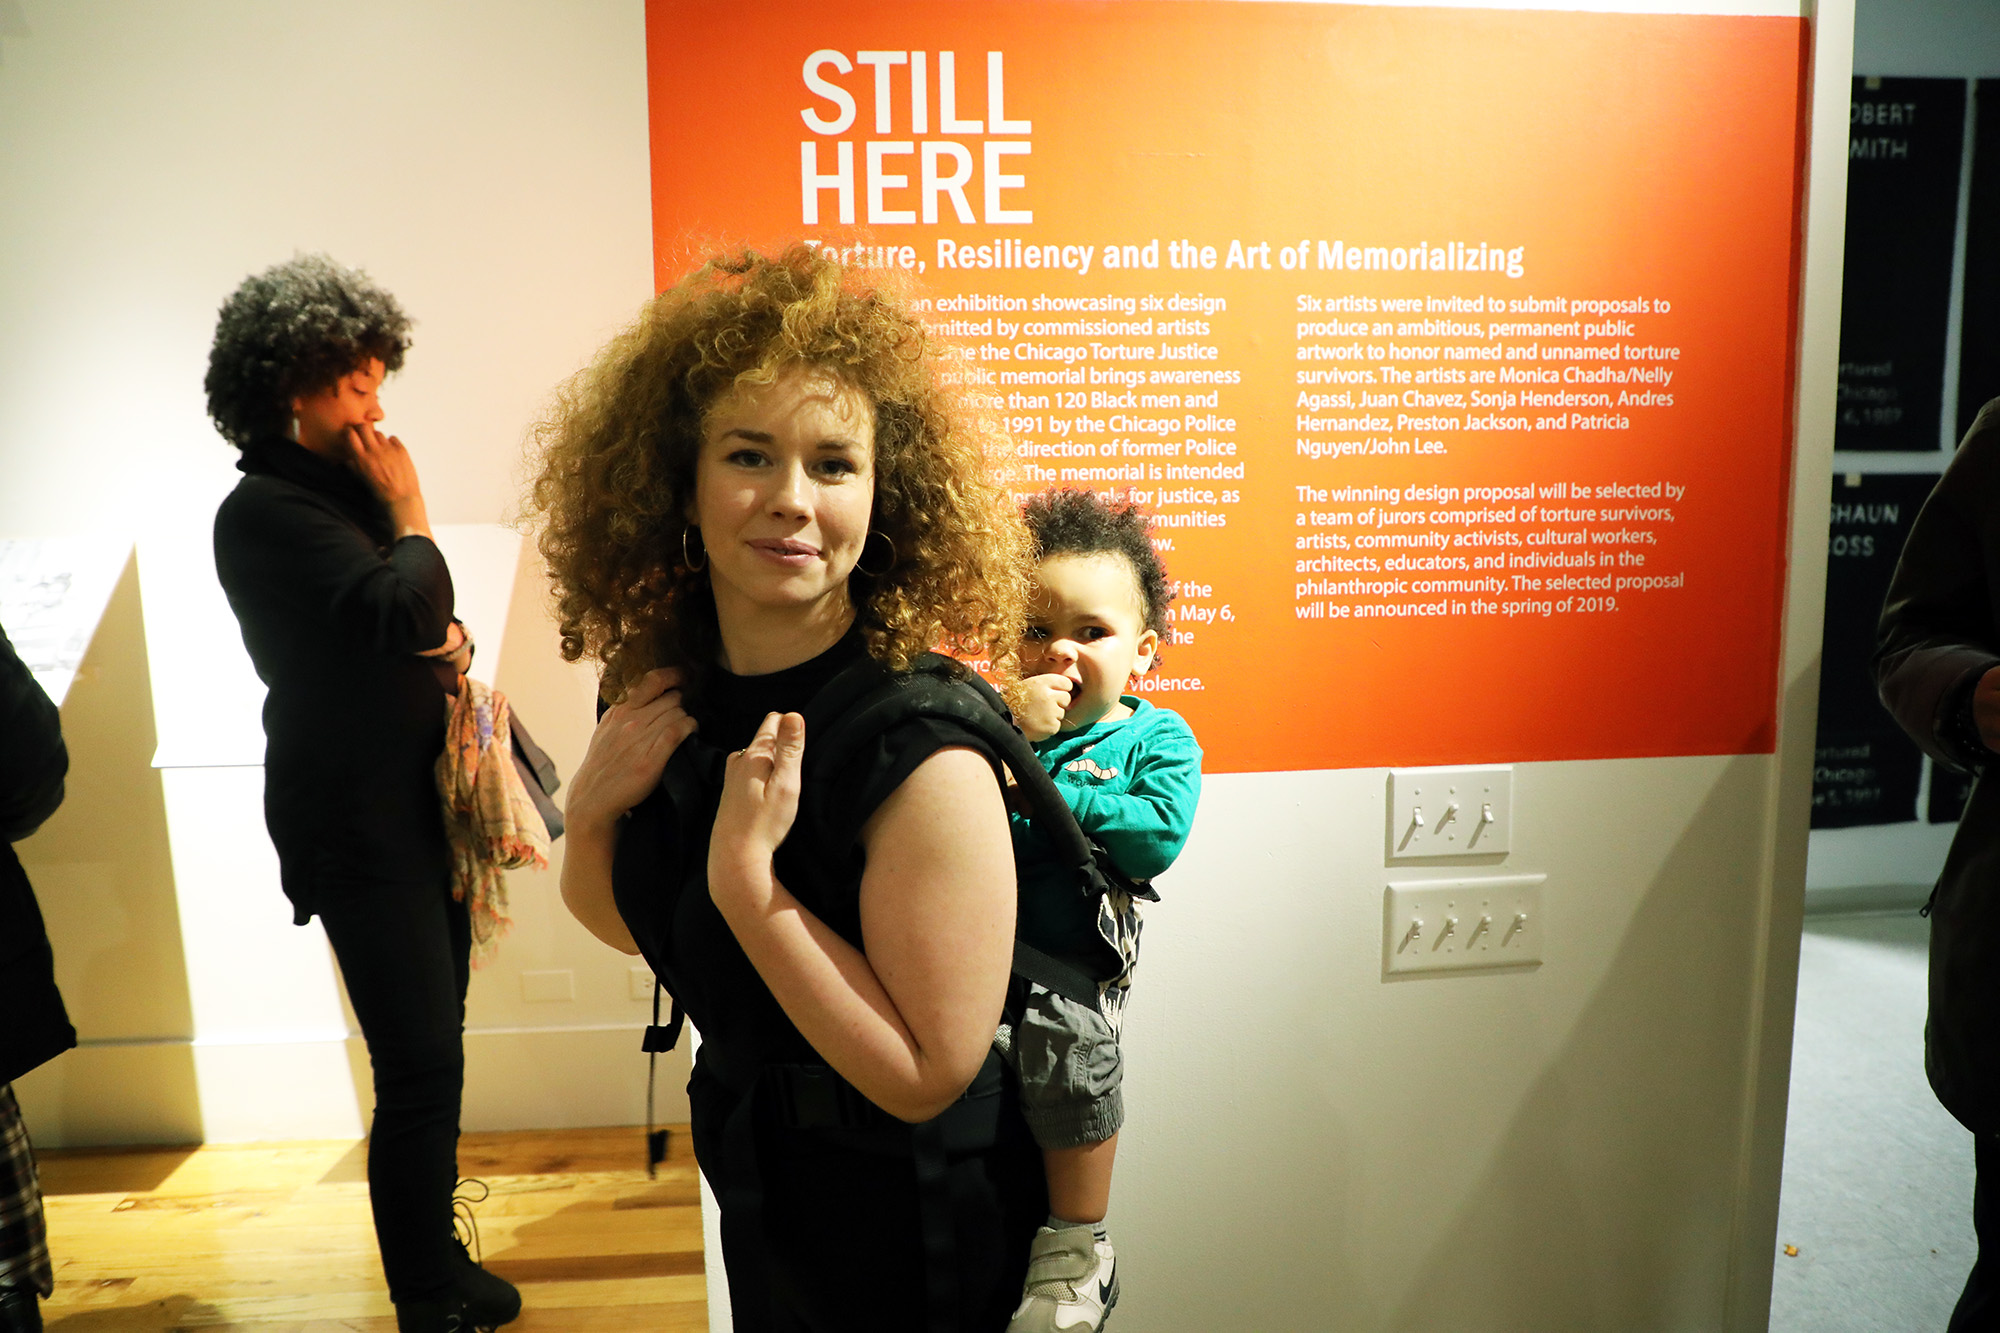 Co-curator Hannah Jasper stands near the exhibit's entrance with her son.